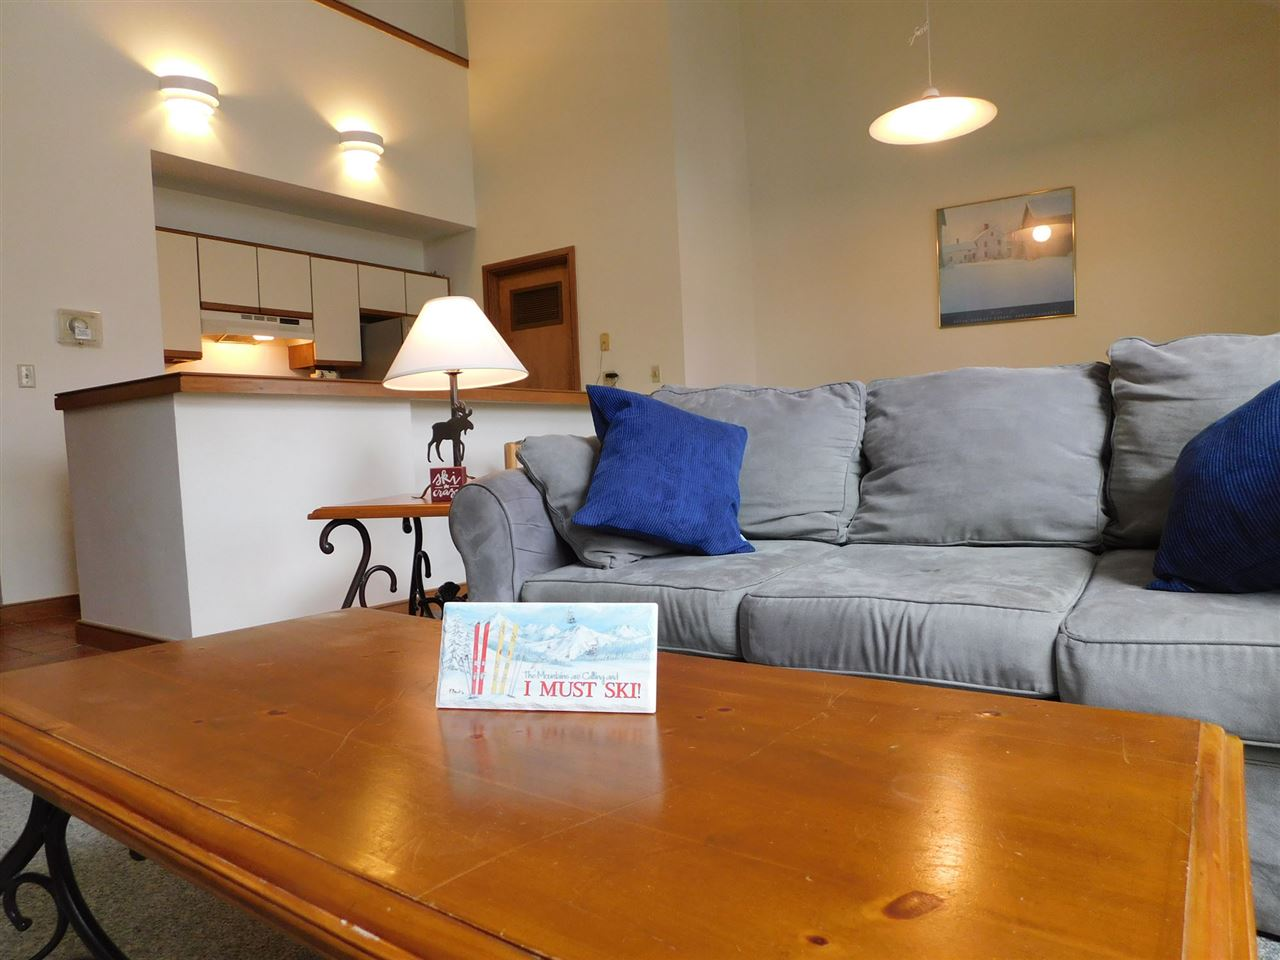 Here it is! Check out this three bedroom loft...